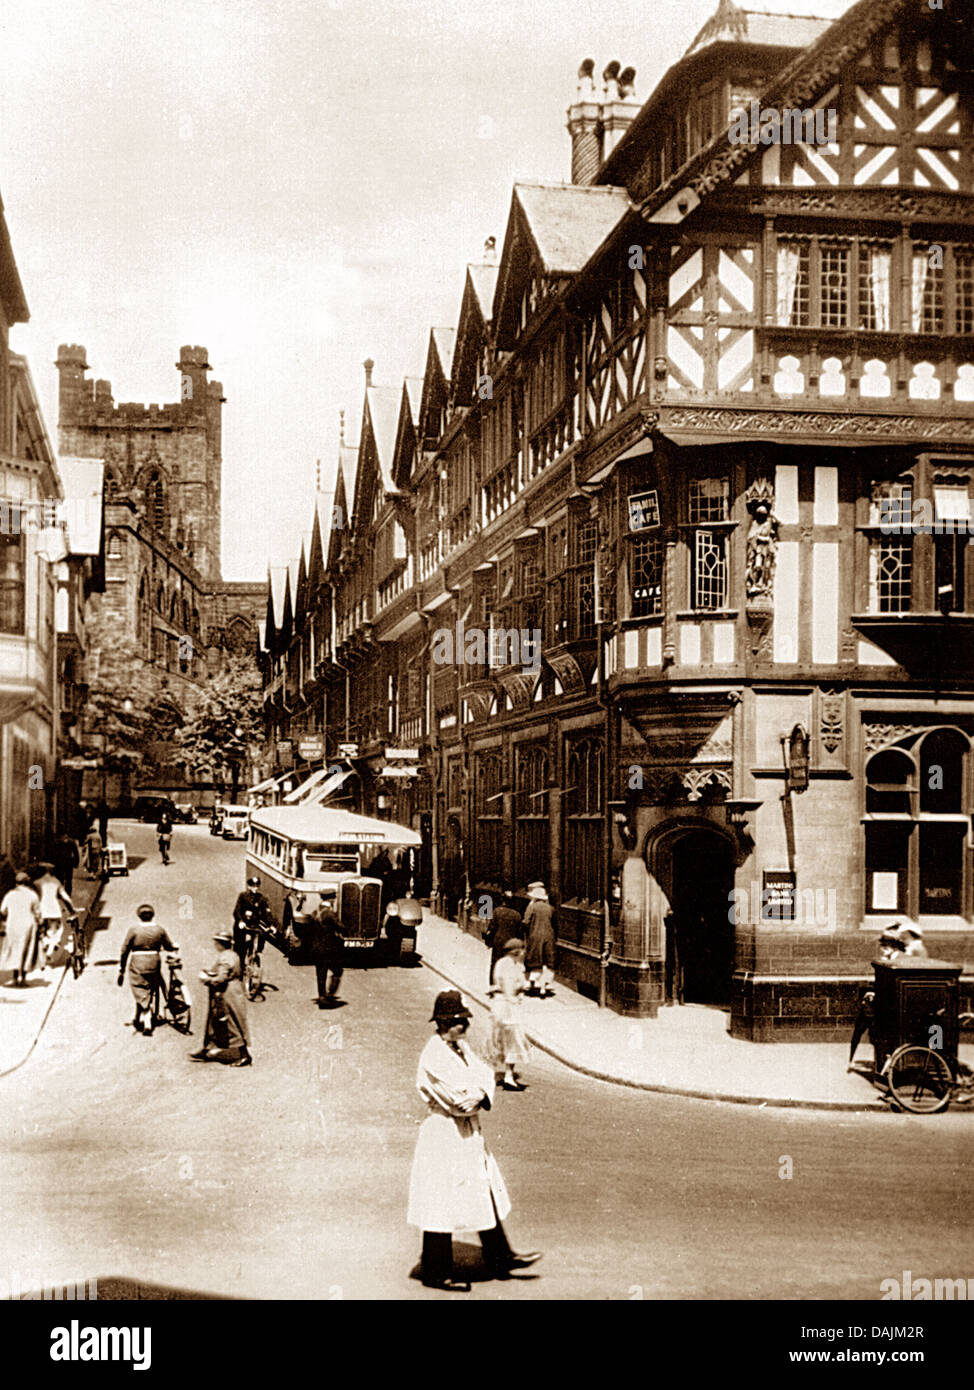 Chester probably 1930s - Stock Image